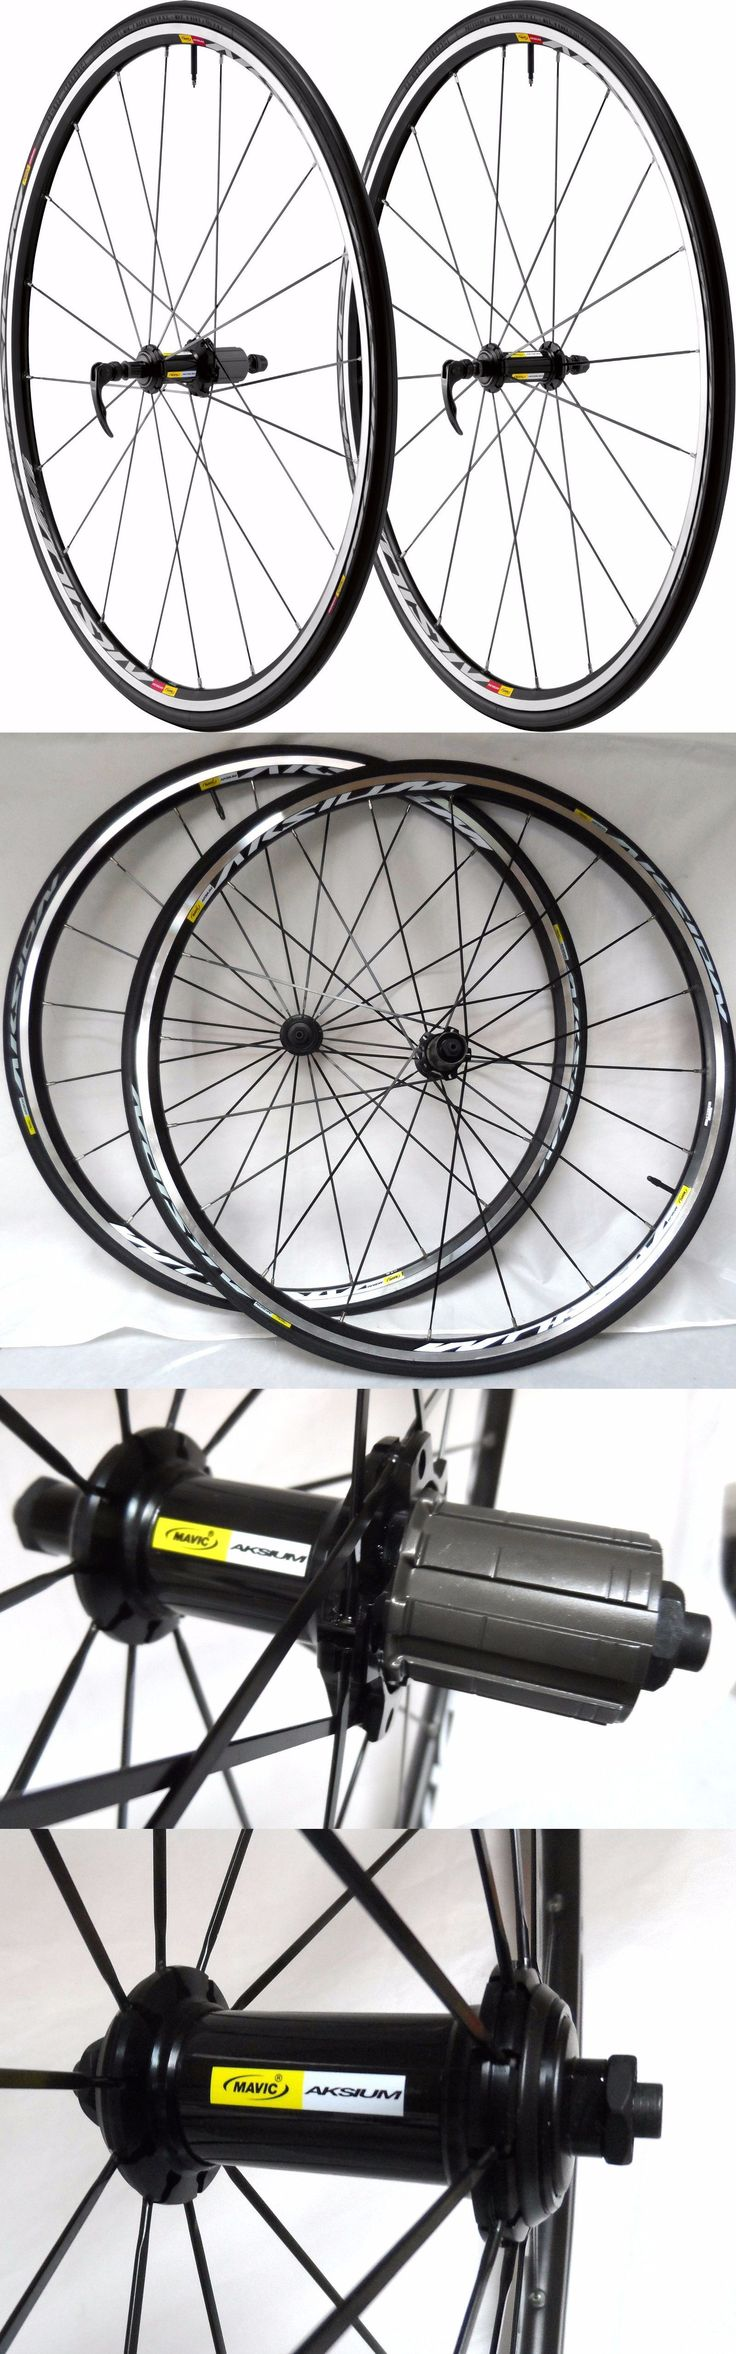 Wheels and Wheelsets 177830: Mavic Aksium 700C Road Bicycle Wheels, W 700X25 Aksion Tires, 11 Speed, New! -> BUY IT NOW ONLY: $169.99 on eBay!